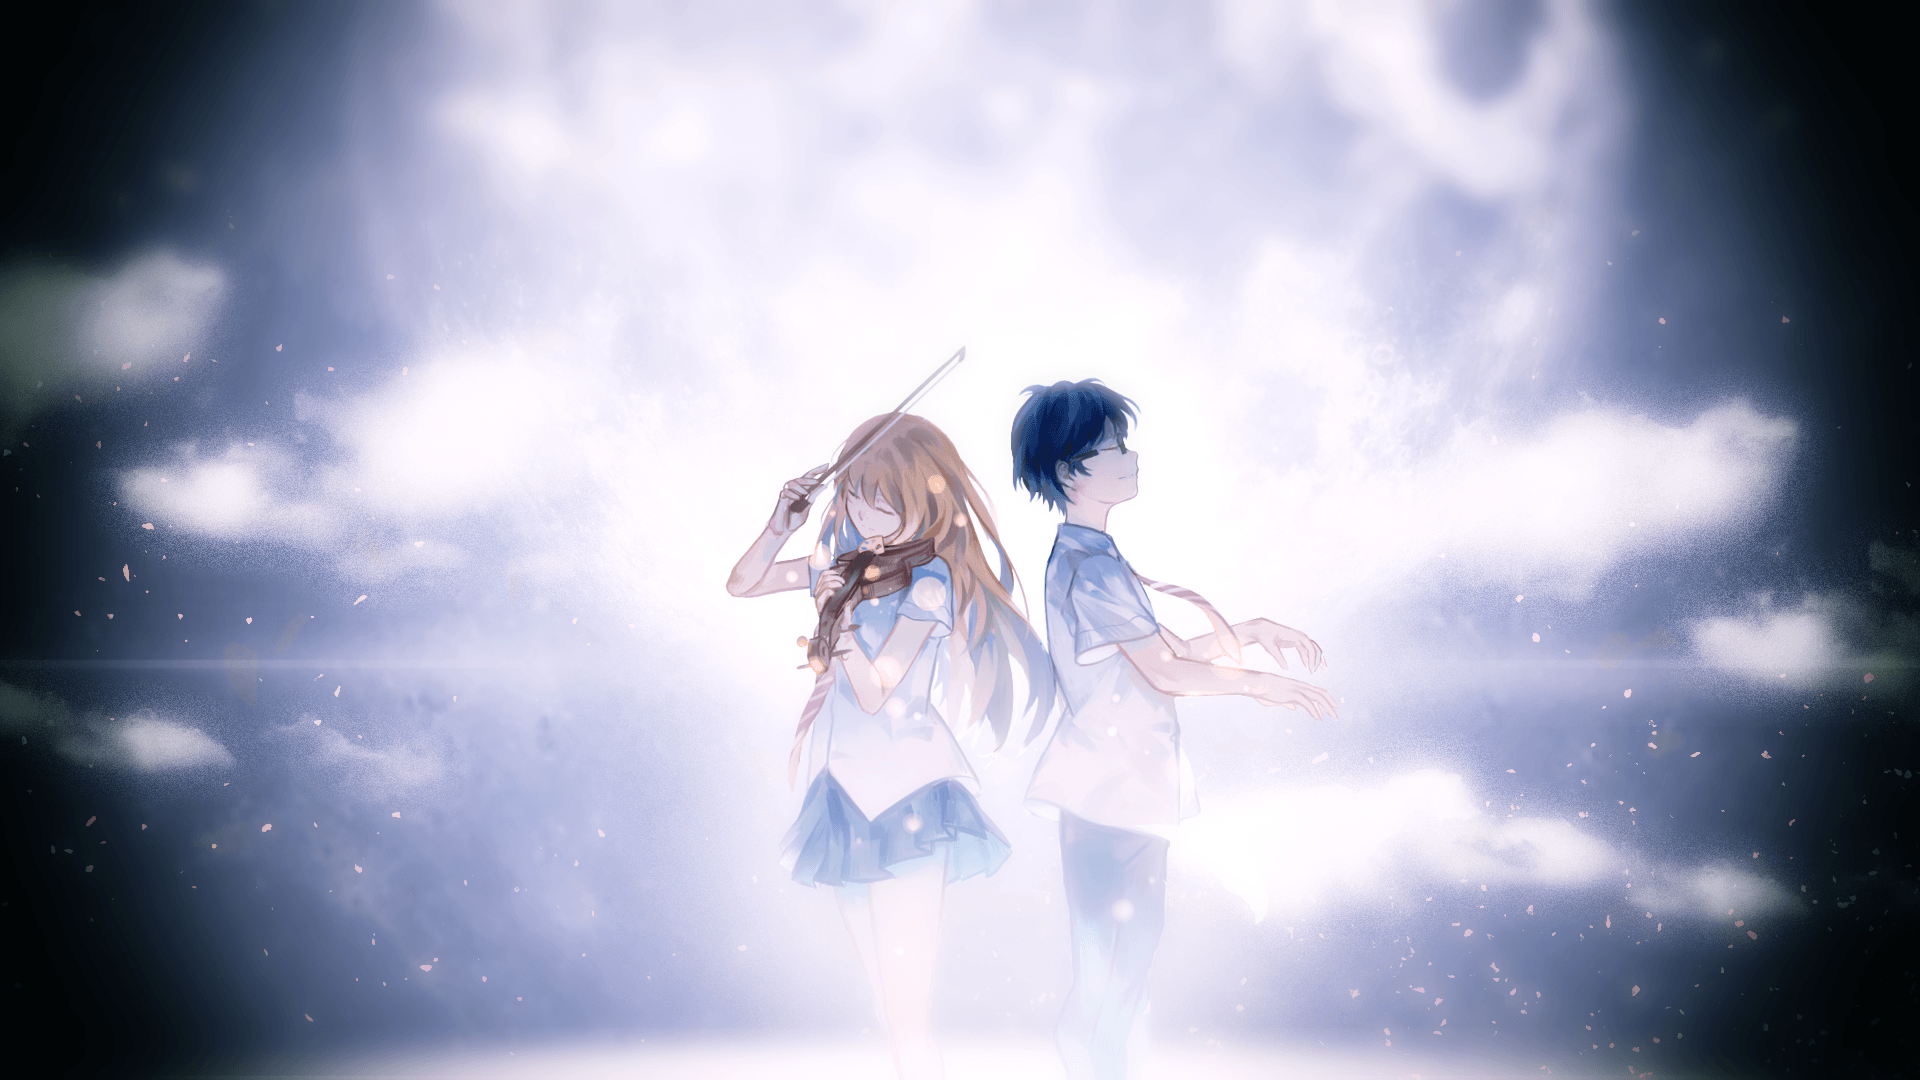 Your Lie In April Wallpapers - Wallpaper Cave